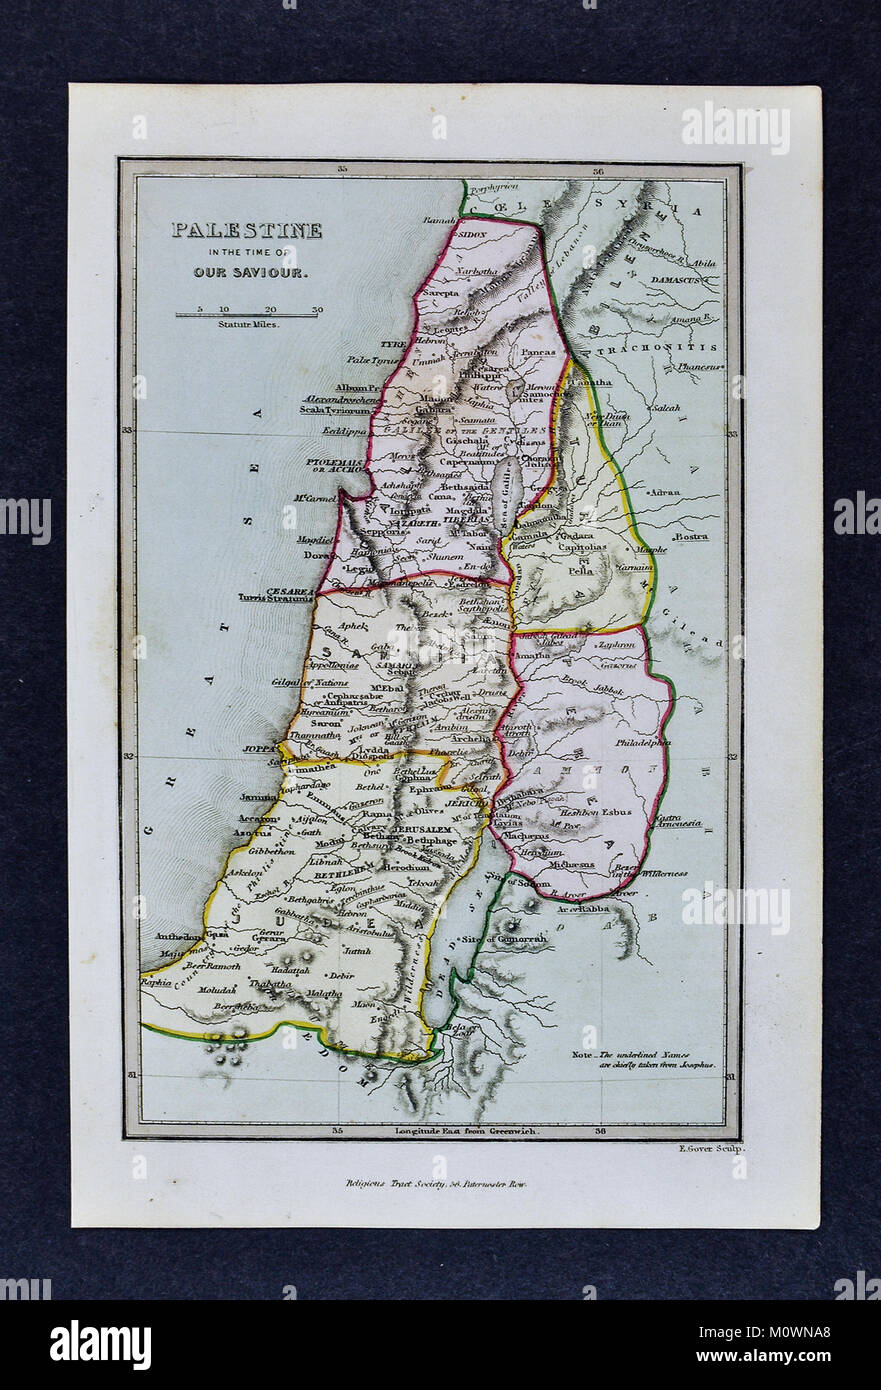 1799 Bible Tract Society Map - Palestine in the Time of Our Savior - New Testament Holy Land Jesus Christ - Stock Image